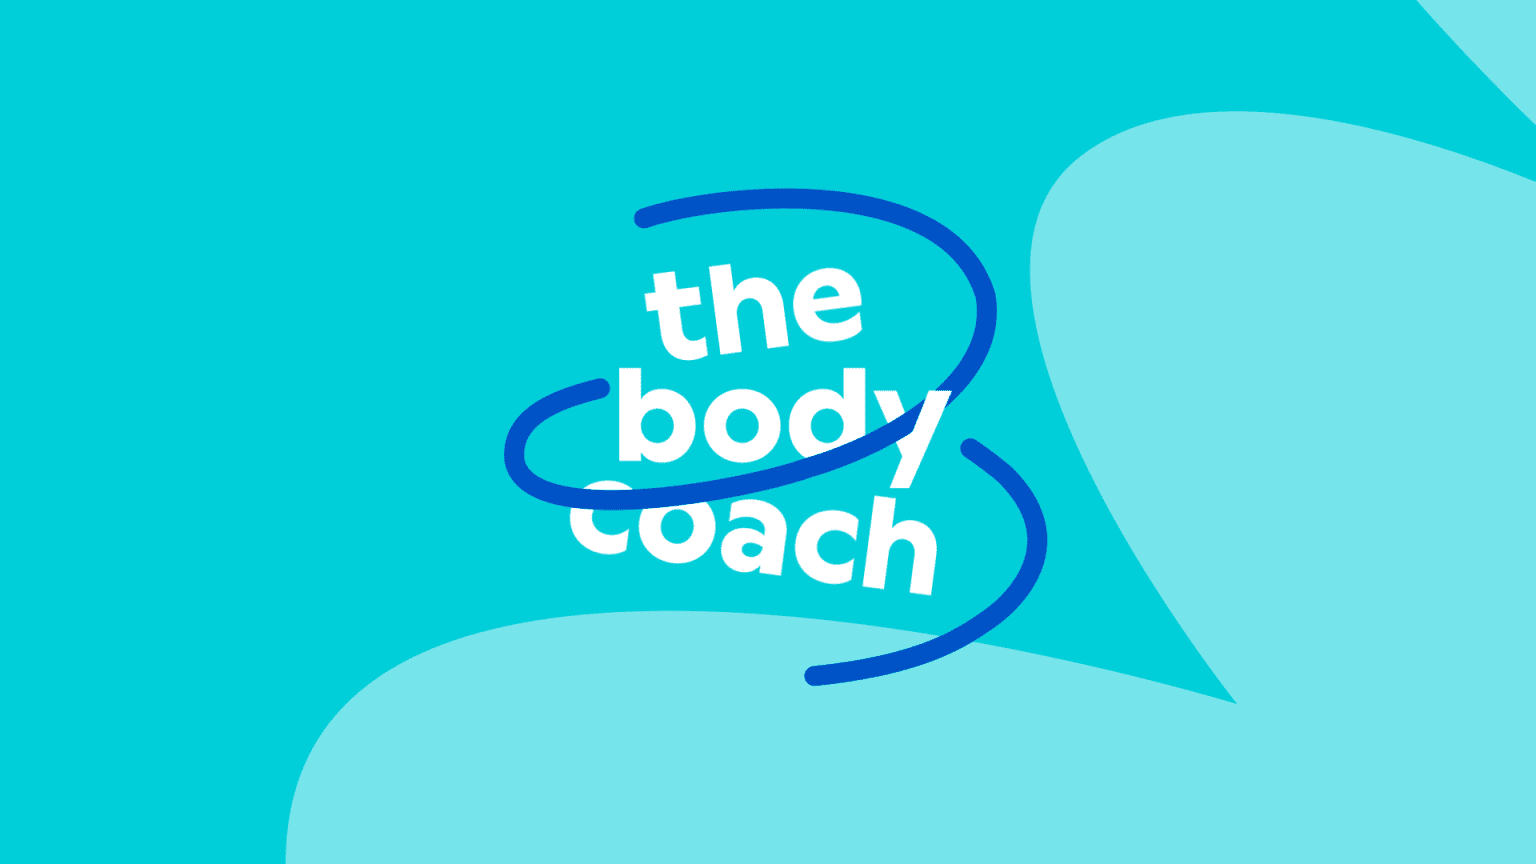 The Bodycoach Social Media